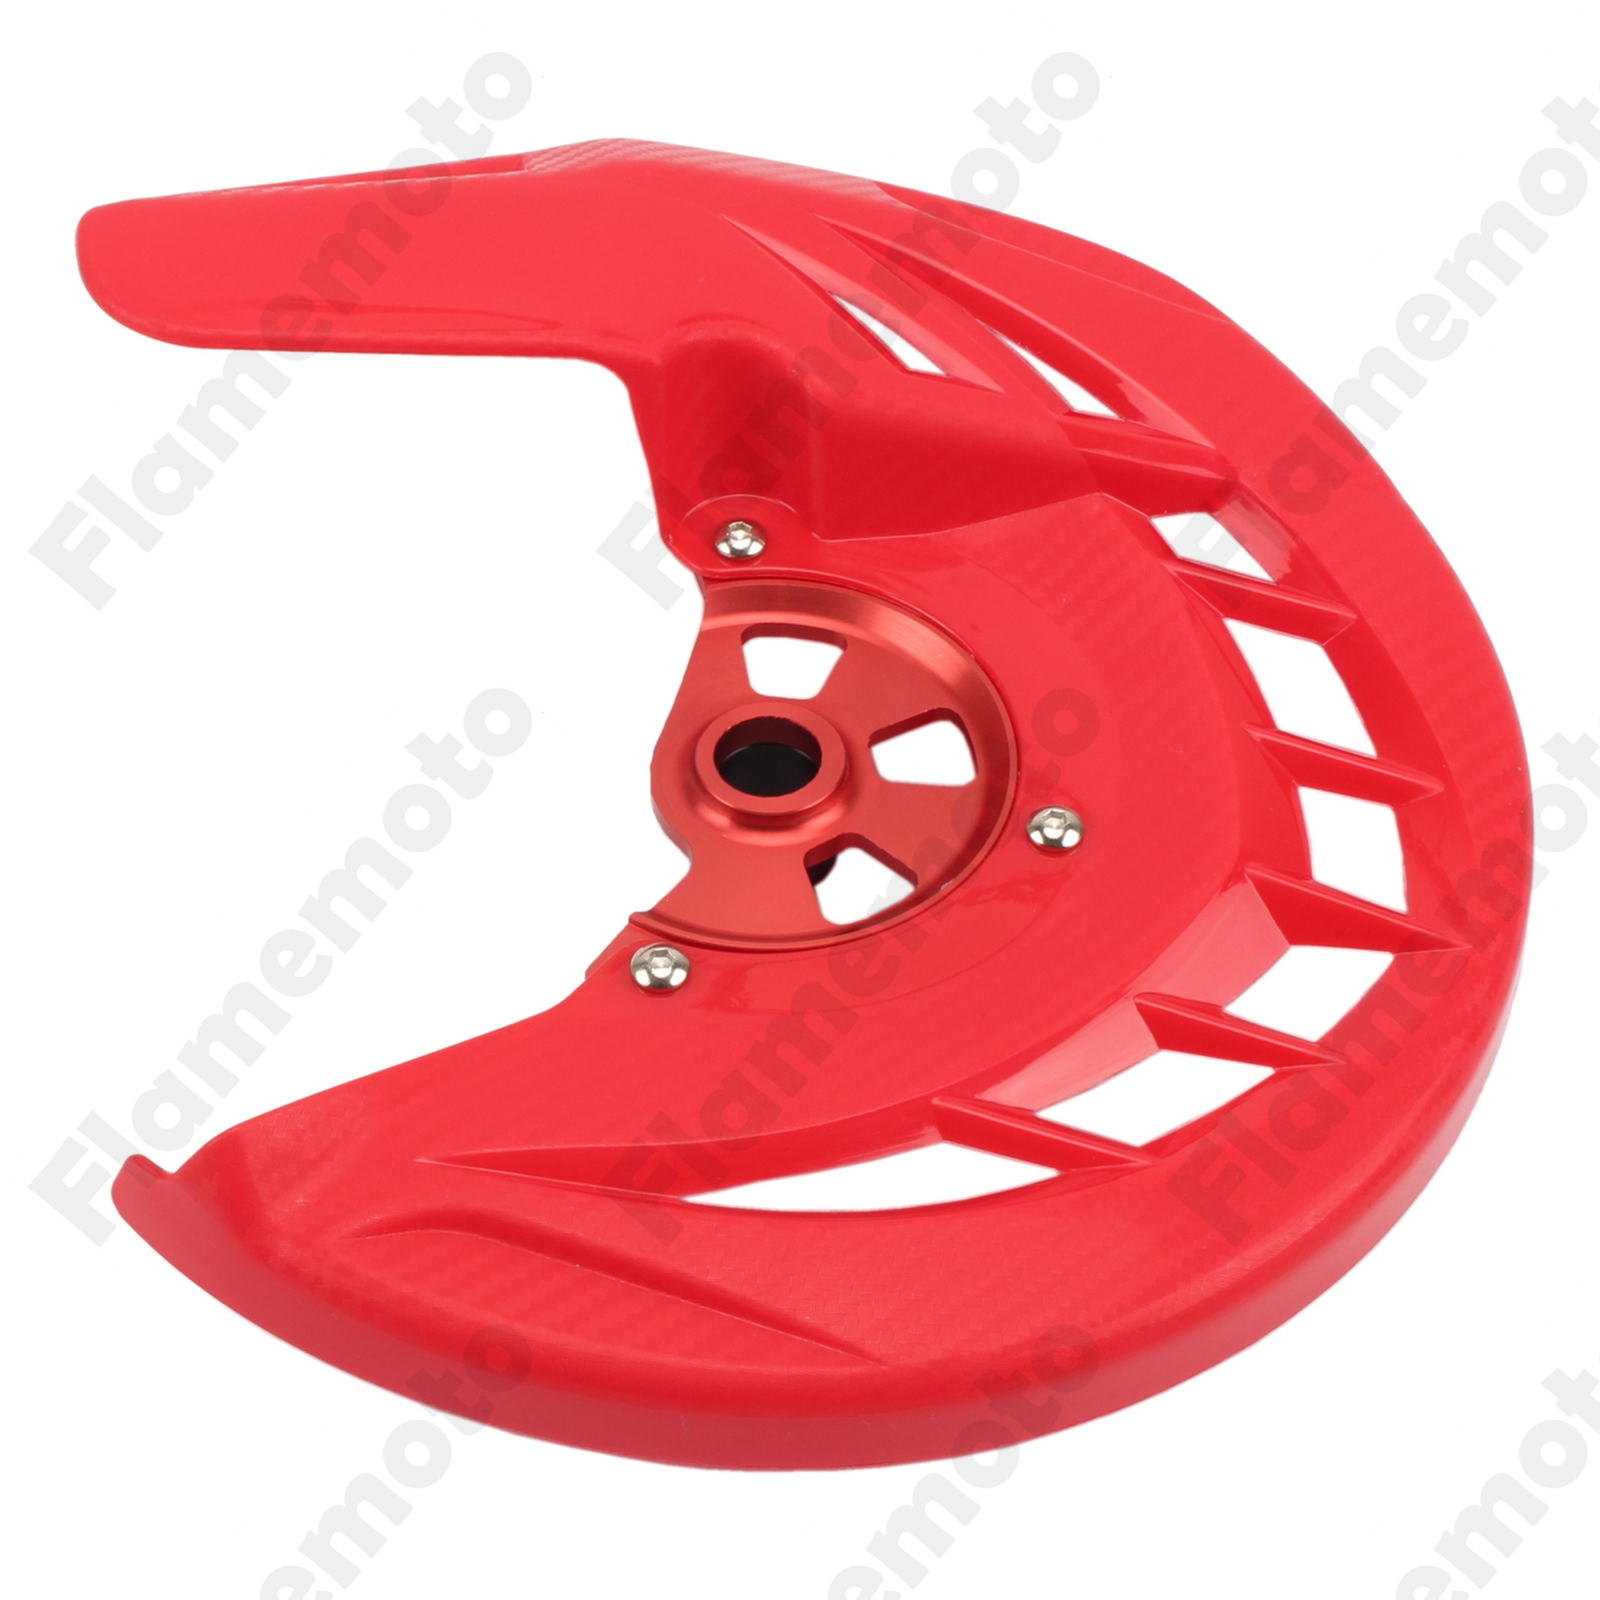 Motorcycle Bike Parts Red Front Brake Disc Guard Protector Cover For Honda CRF 250R 450R 250X 2004 2005 2006-2013 2014 2015 arashi motorcycle parts radiator grille protective cover grill guard protector for 2003 2004 2005 2006 honda cbr600rr cbr 600 rr